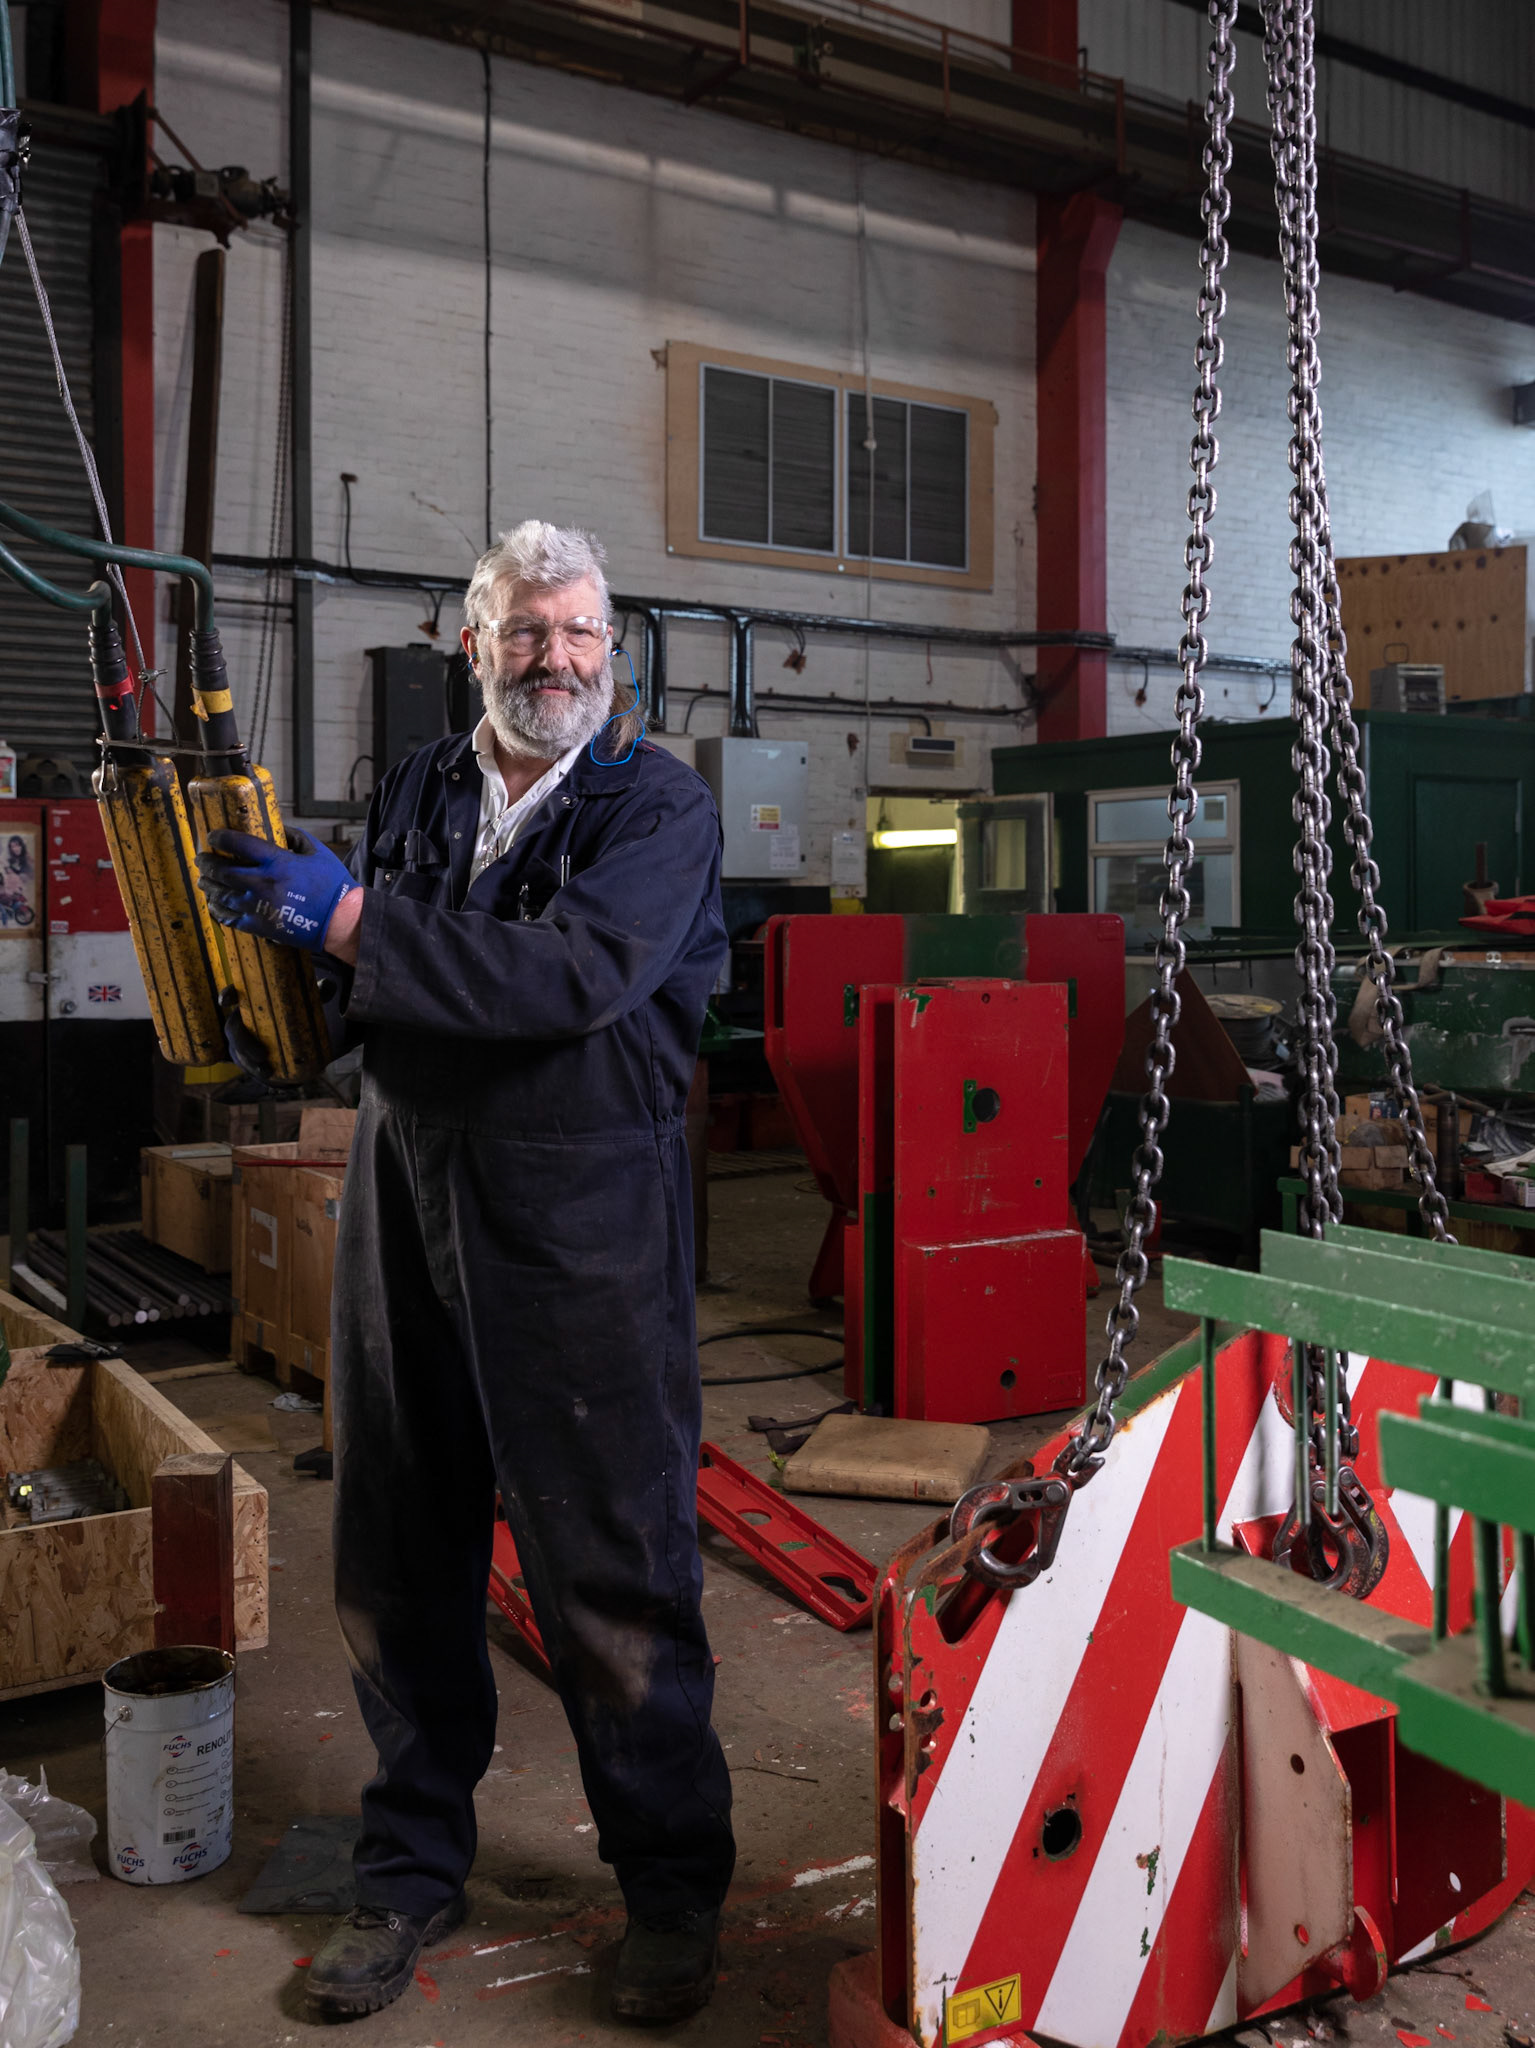 industrial portrait off worker in factory with ear plugs and chain lifting device